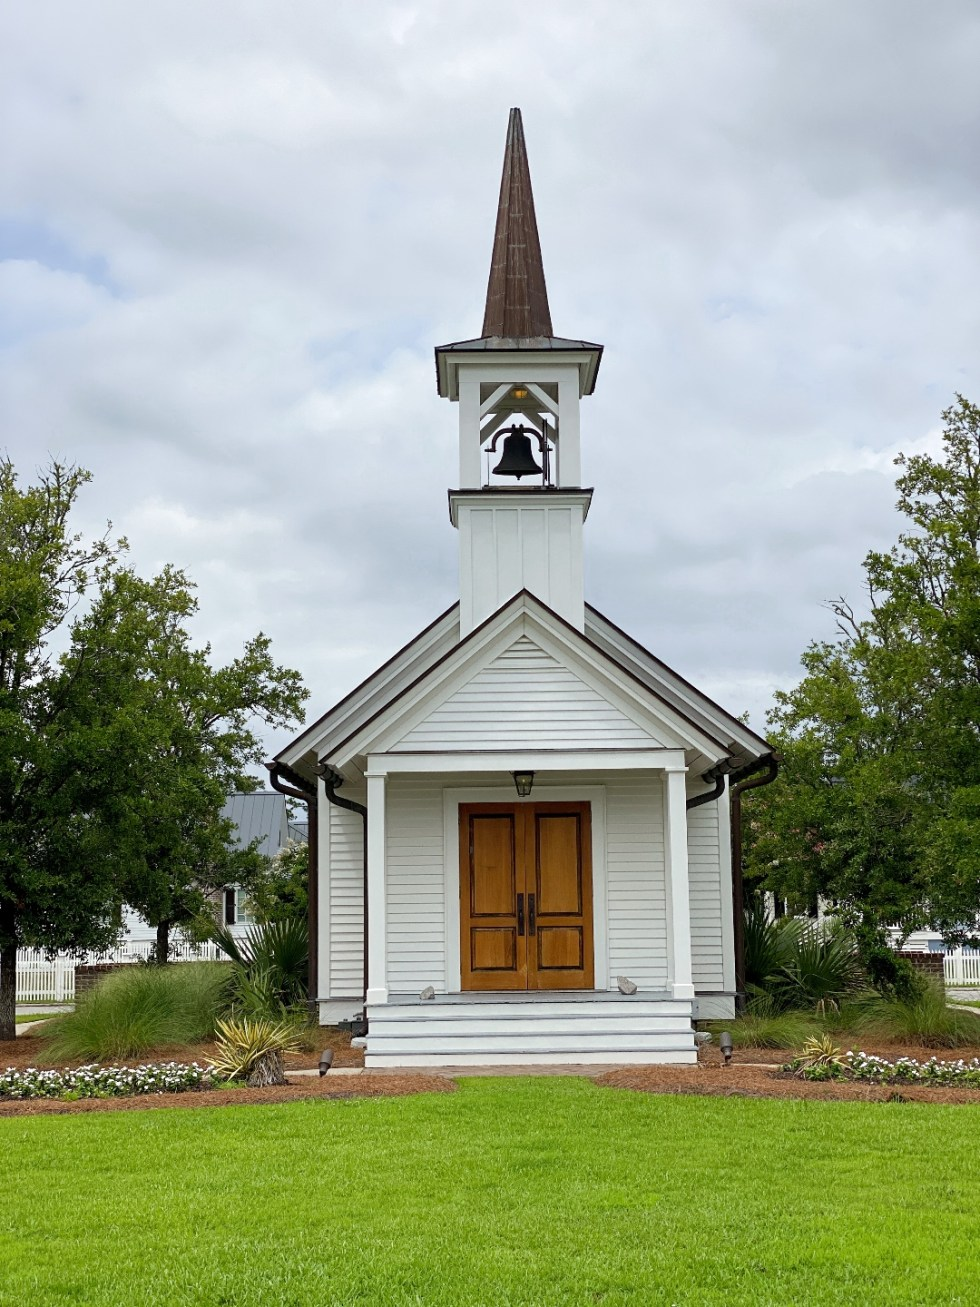 What to Do in Oriental, NC - I'm Fixin' To - @imfixintoblog | Things to do in Oriental NC by popular NC travel blog, I'm Fixin' To: image of a white church with a bell tower and double wood doors.